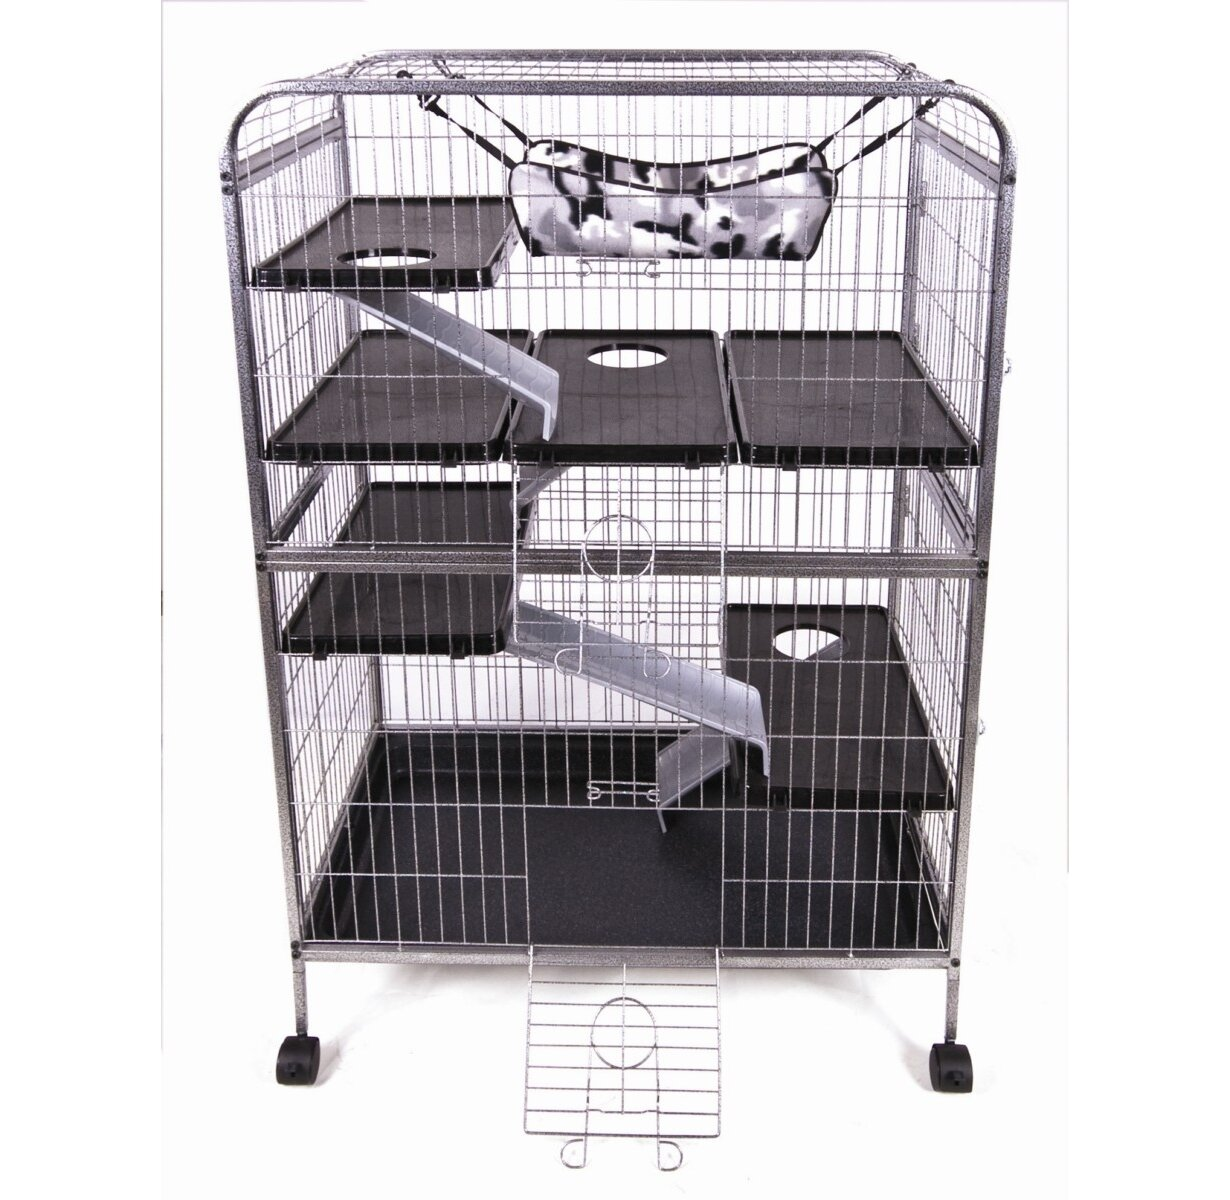 Ware Manufacturing Living Room Series Ferret Cage | Wayfair